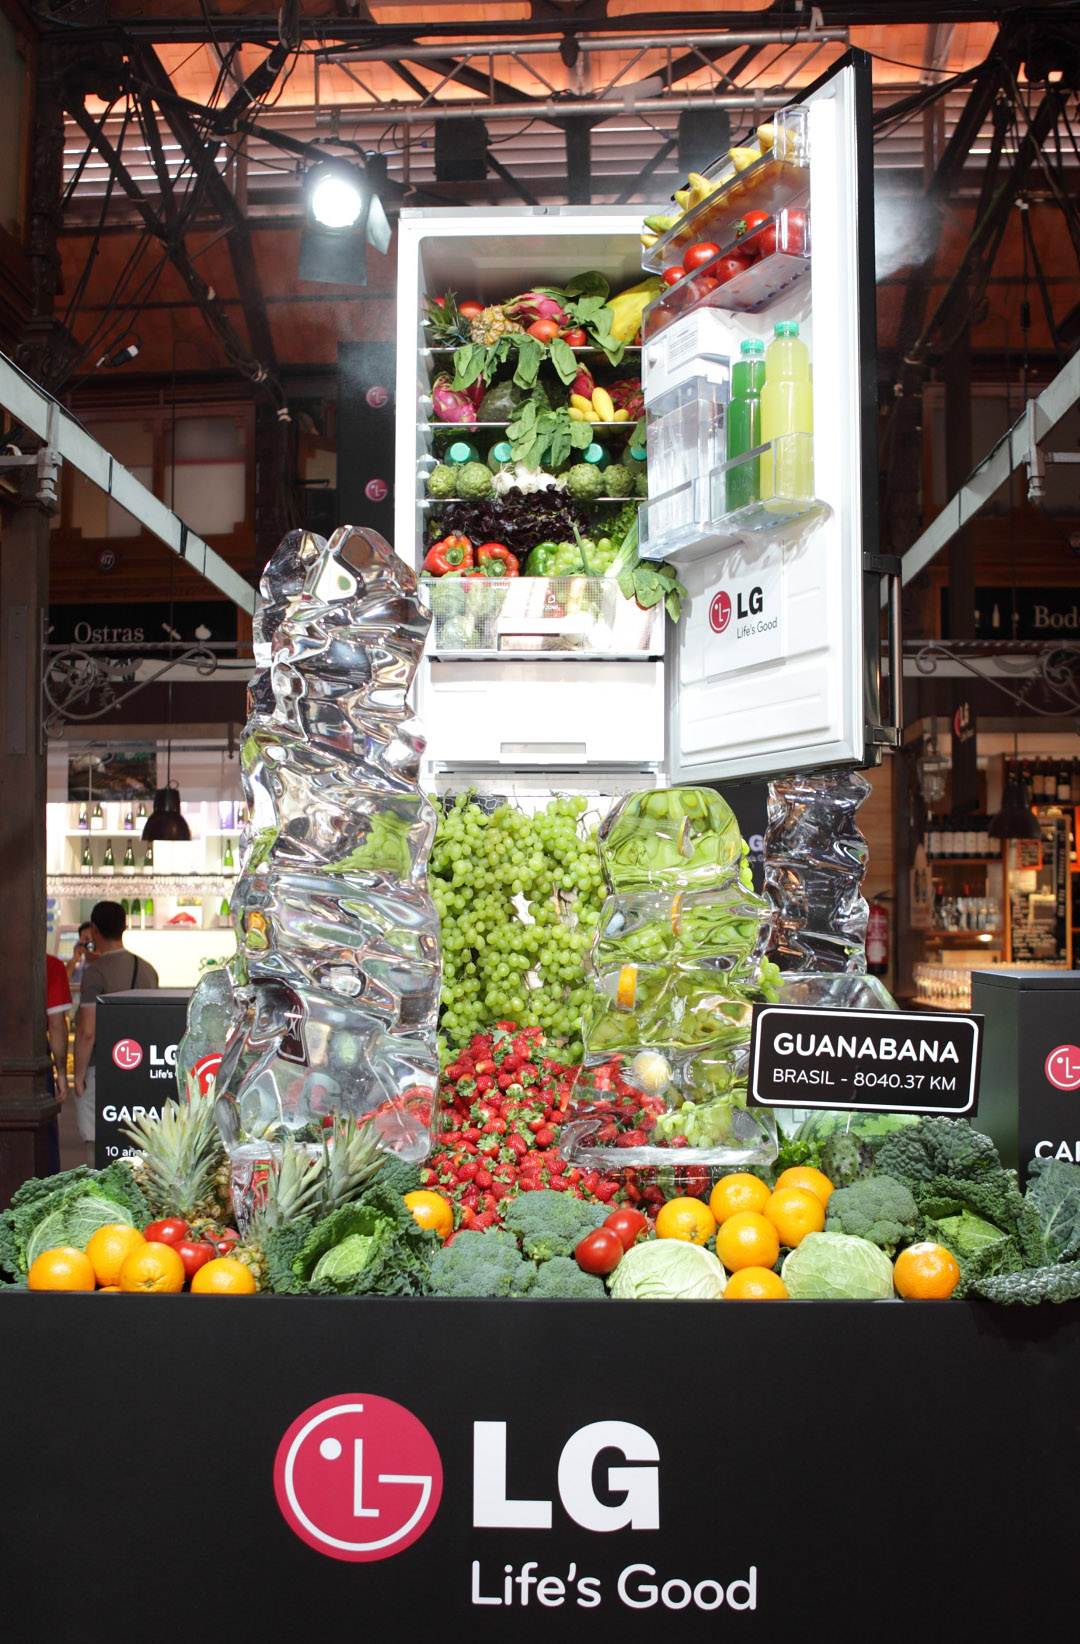 A giant-sized LG refrigerator display in…, with healthy fruits, vegetables and juices flowing from the appliance's interior like a waterfall.